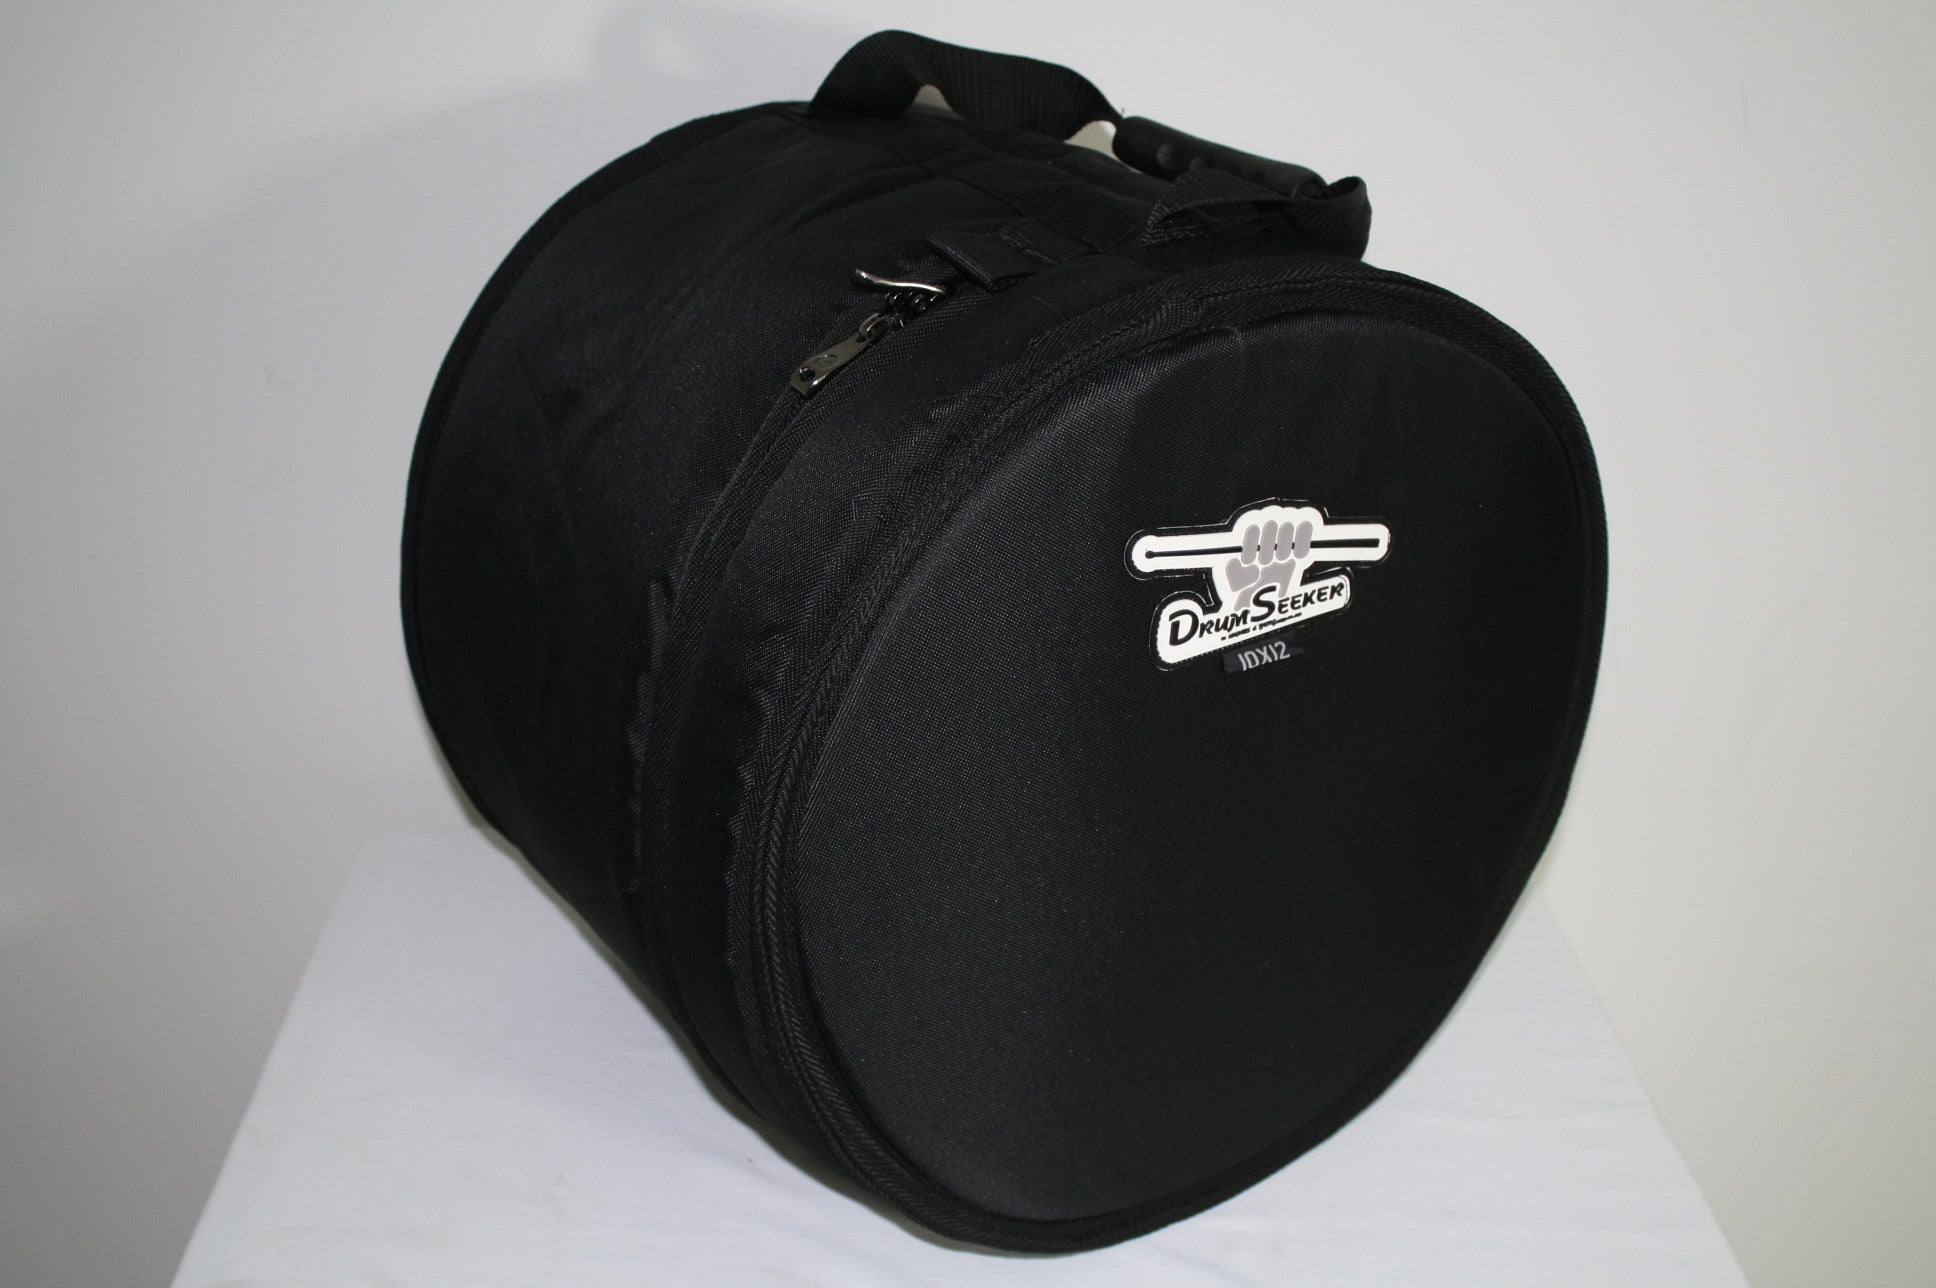 H&B  Drum Seeker 9 x 13 Inches Tom Drum Bag